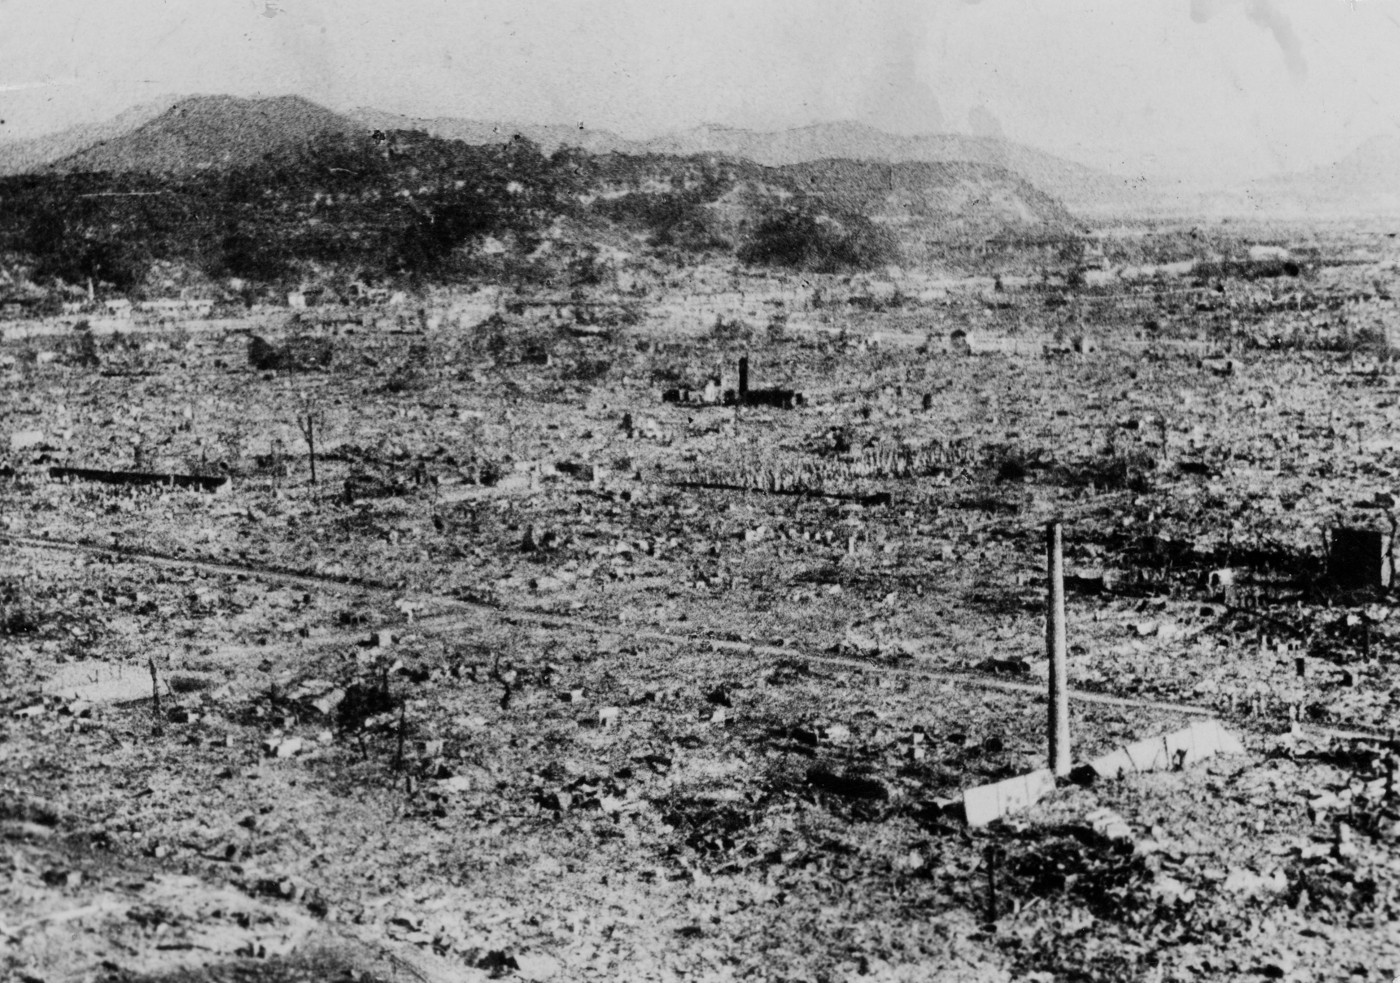 World War II. Hiroshima, 0,8 km from the explosion centre. 24 hours after the explosion of the atom bomb. Photo by Satsuo Nakata © ICRC Archives